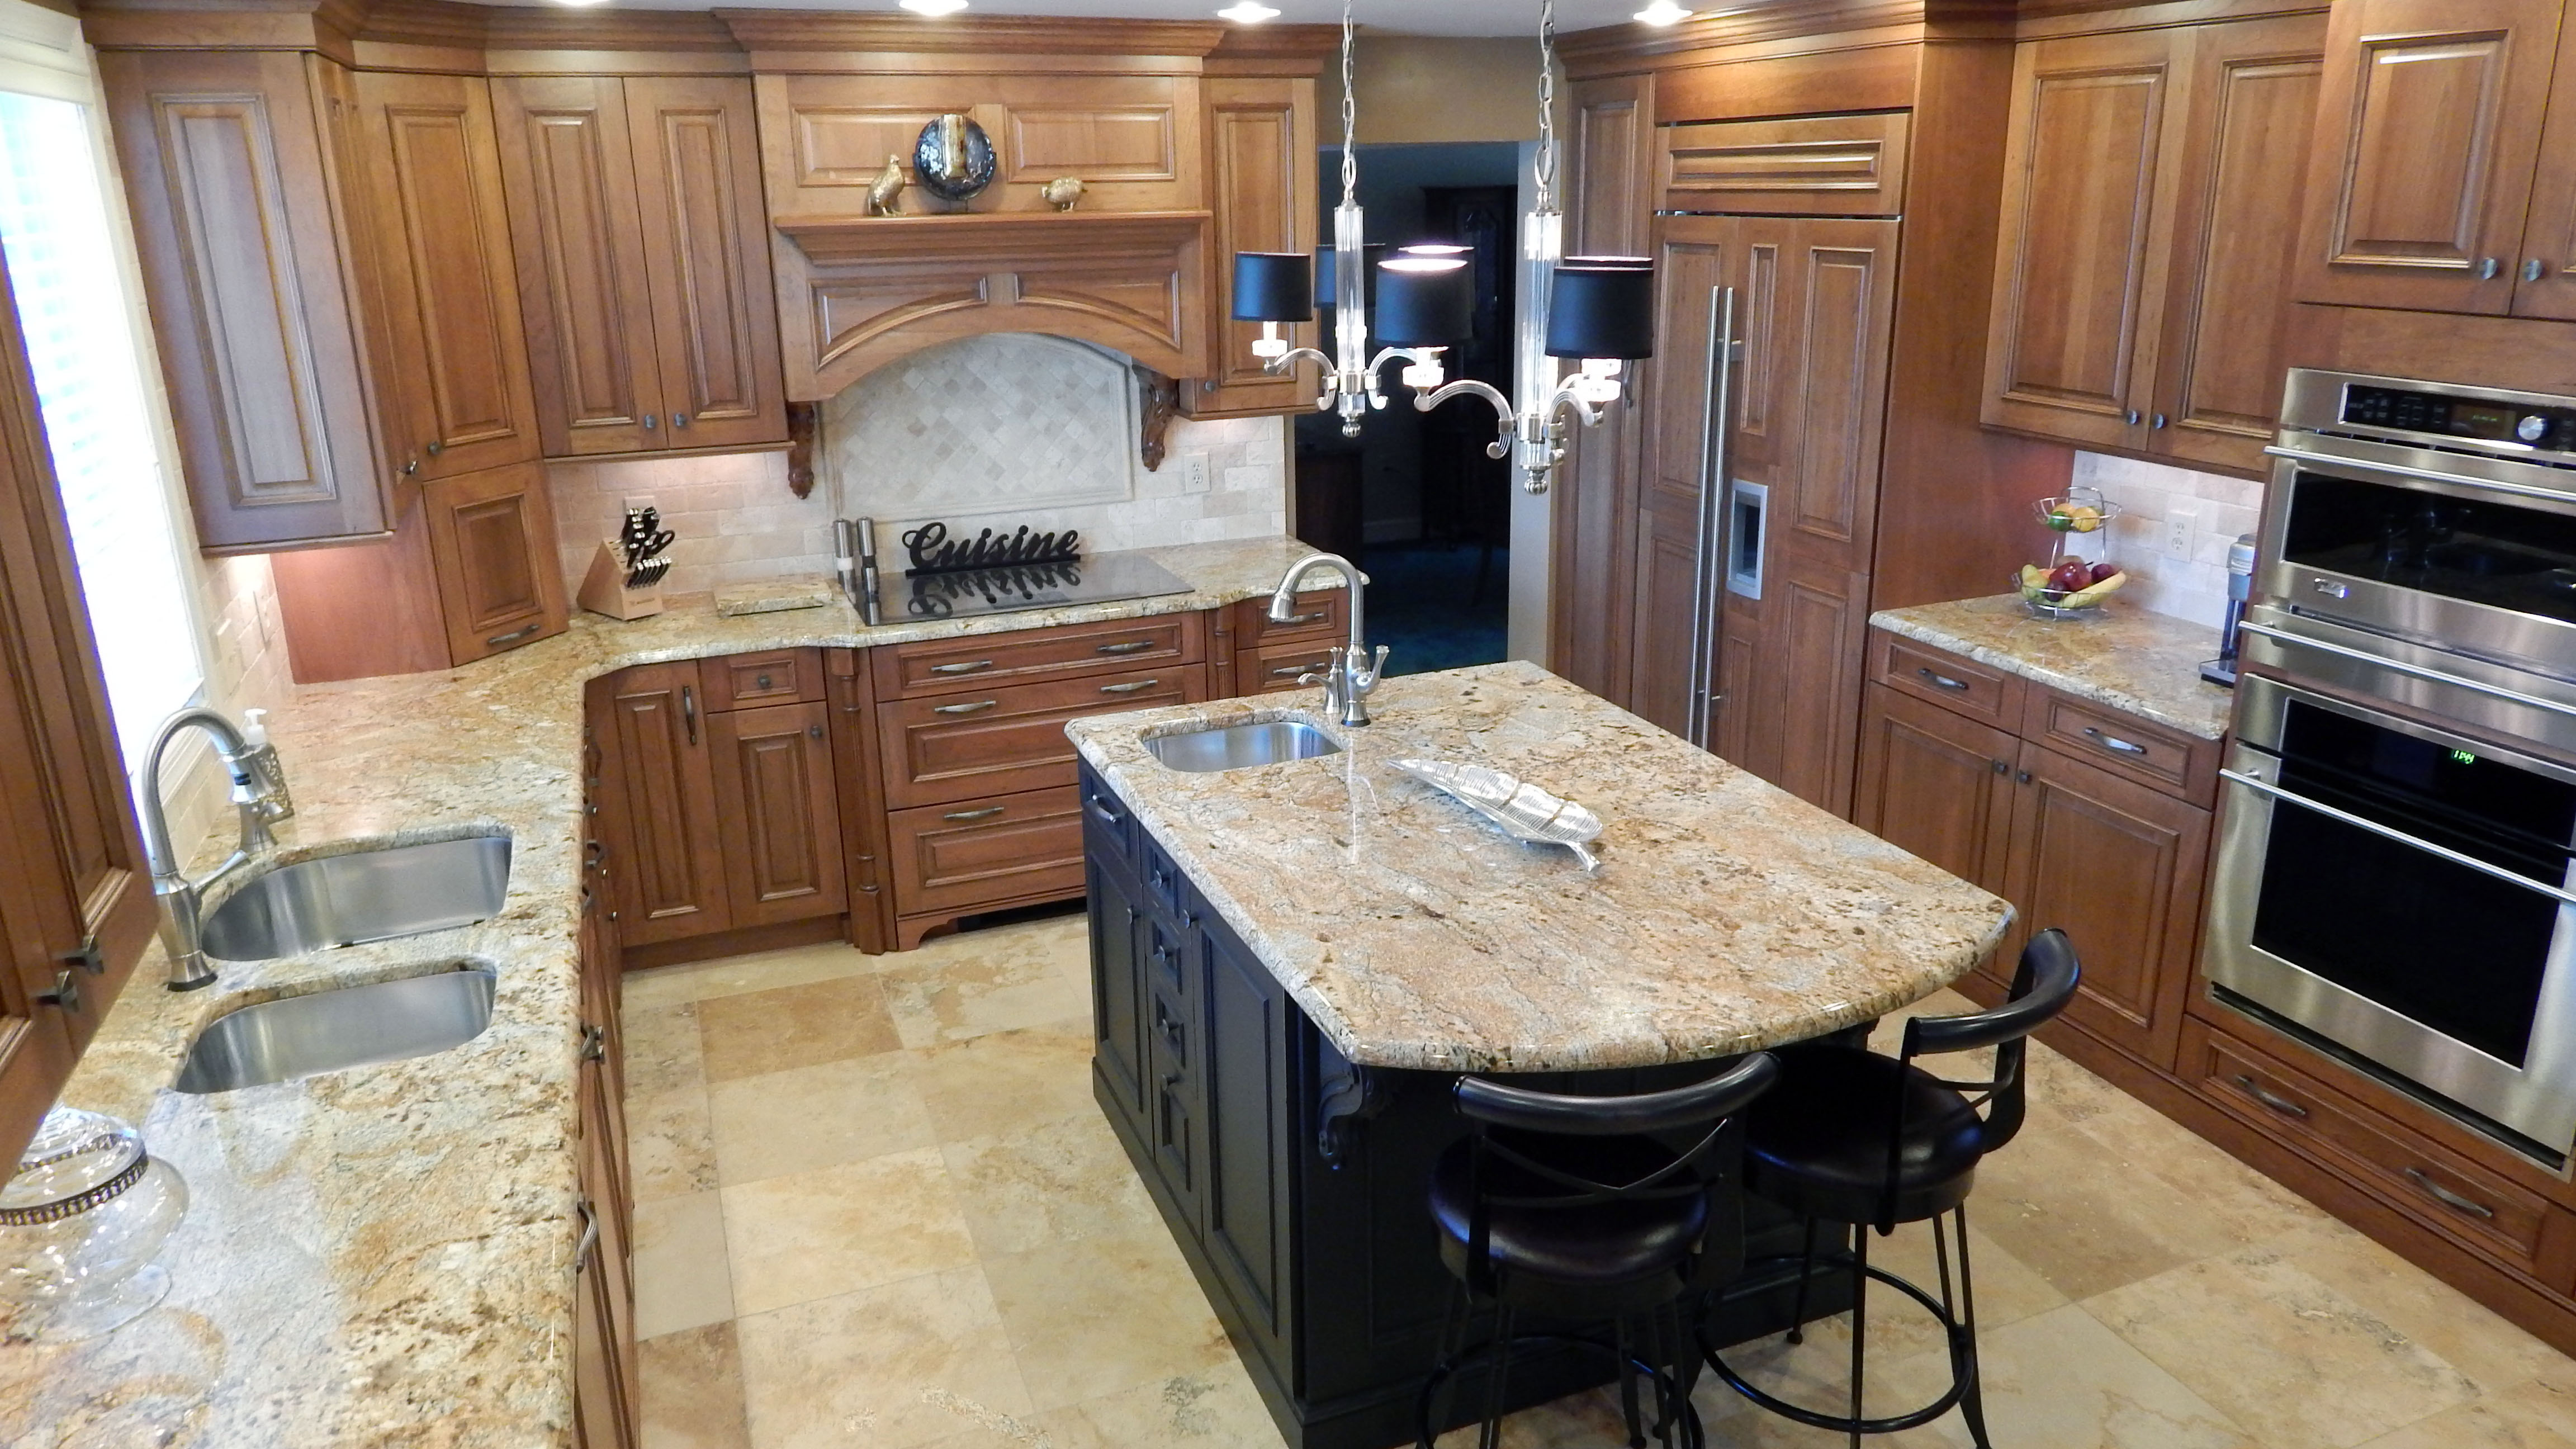 Kitchen remodeling what you should know asj for When remodeling a kitchen where to start